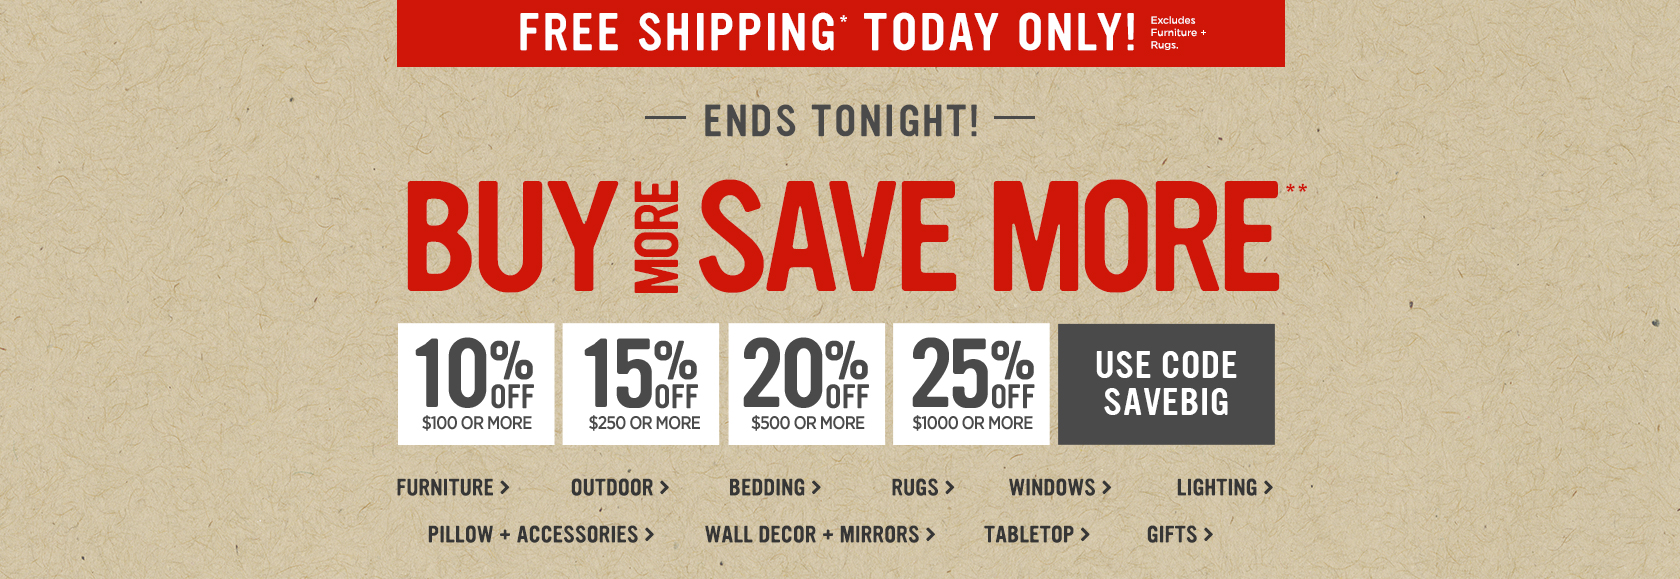 Ends Tonight! Buy More Save More + Free Shipping Today With Code SAVEBIG